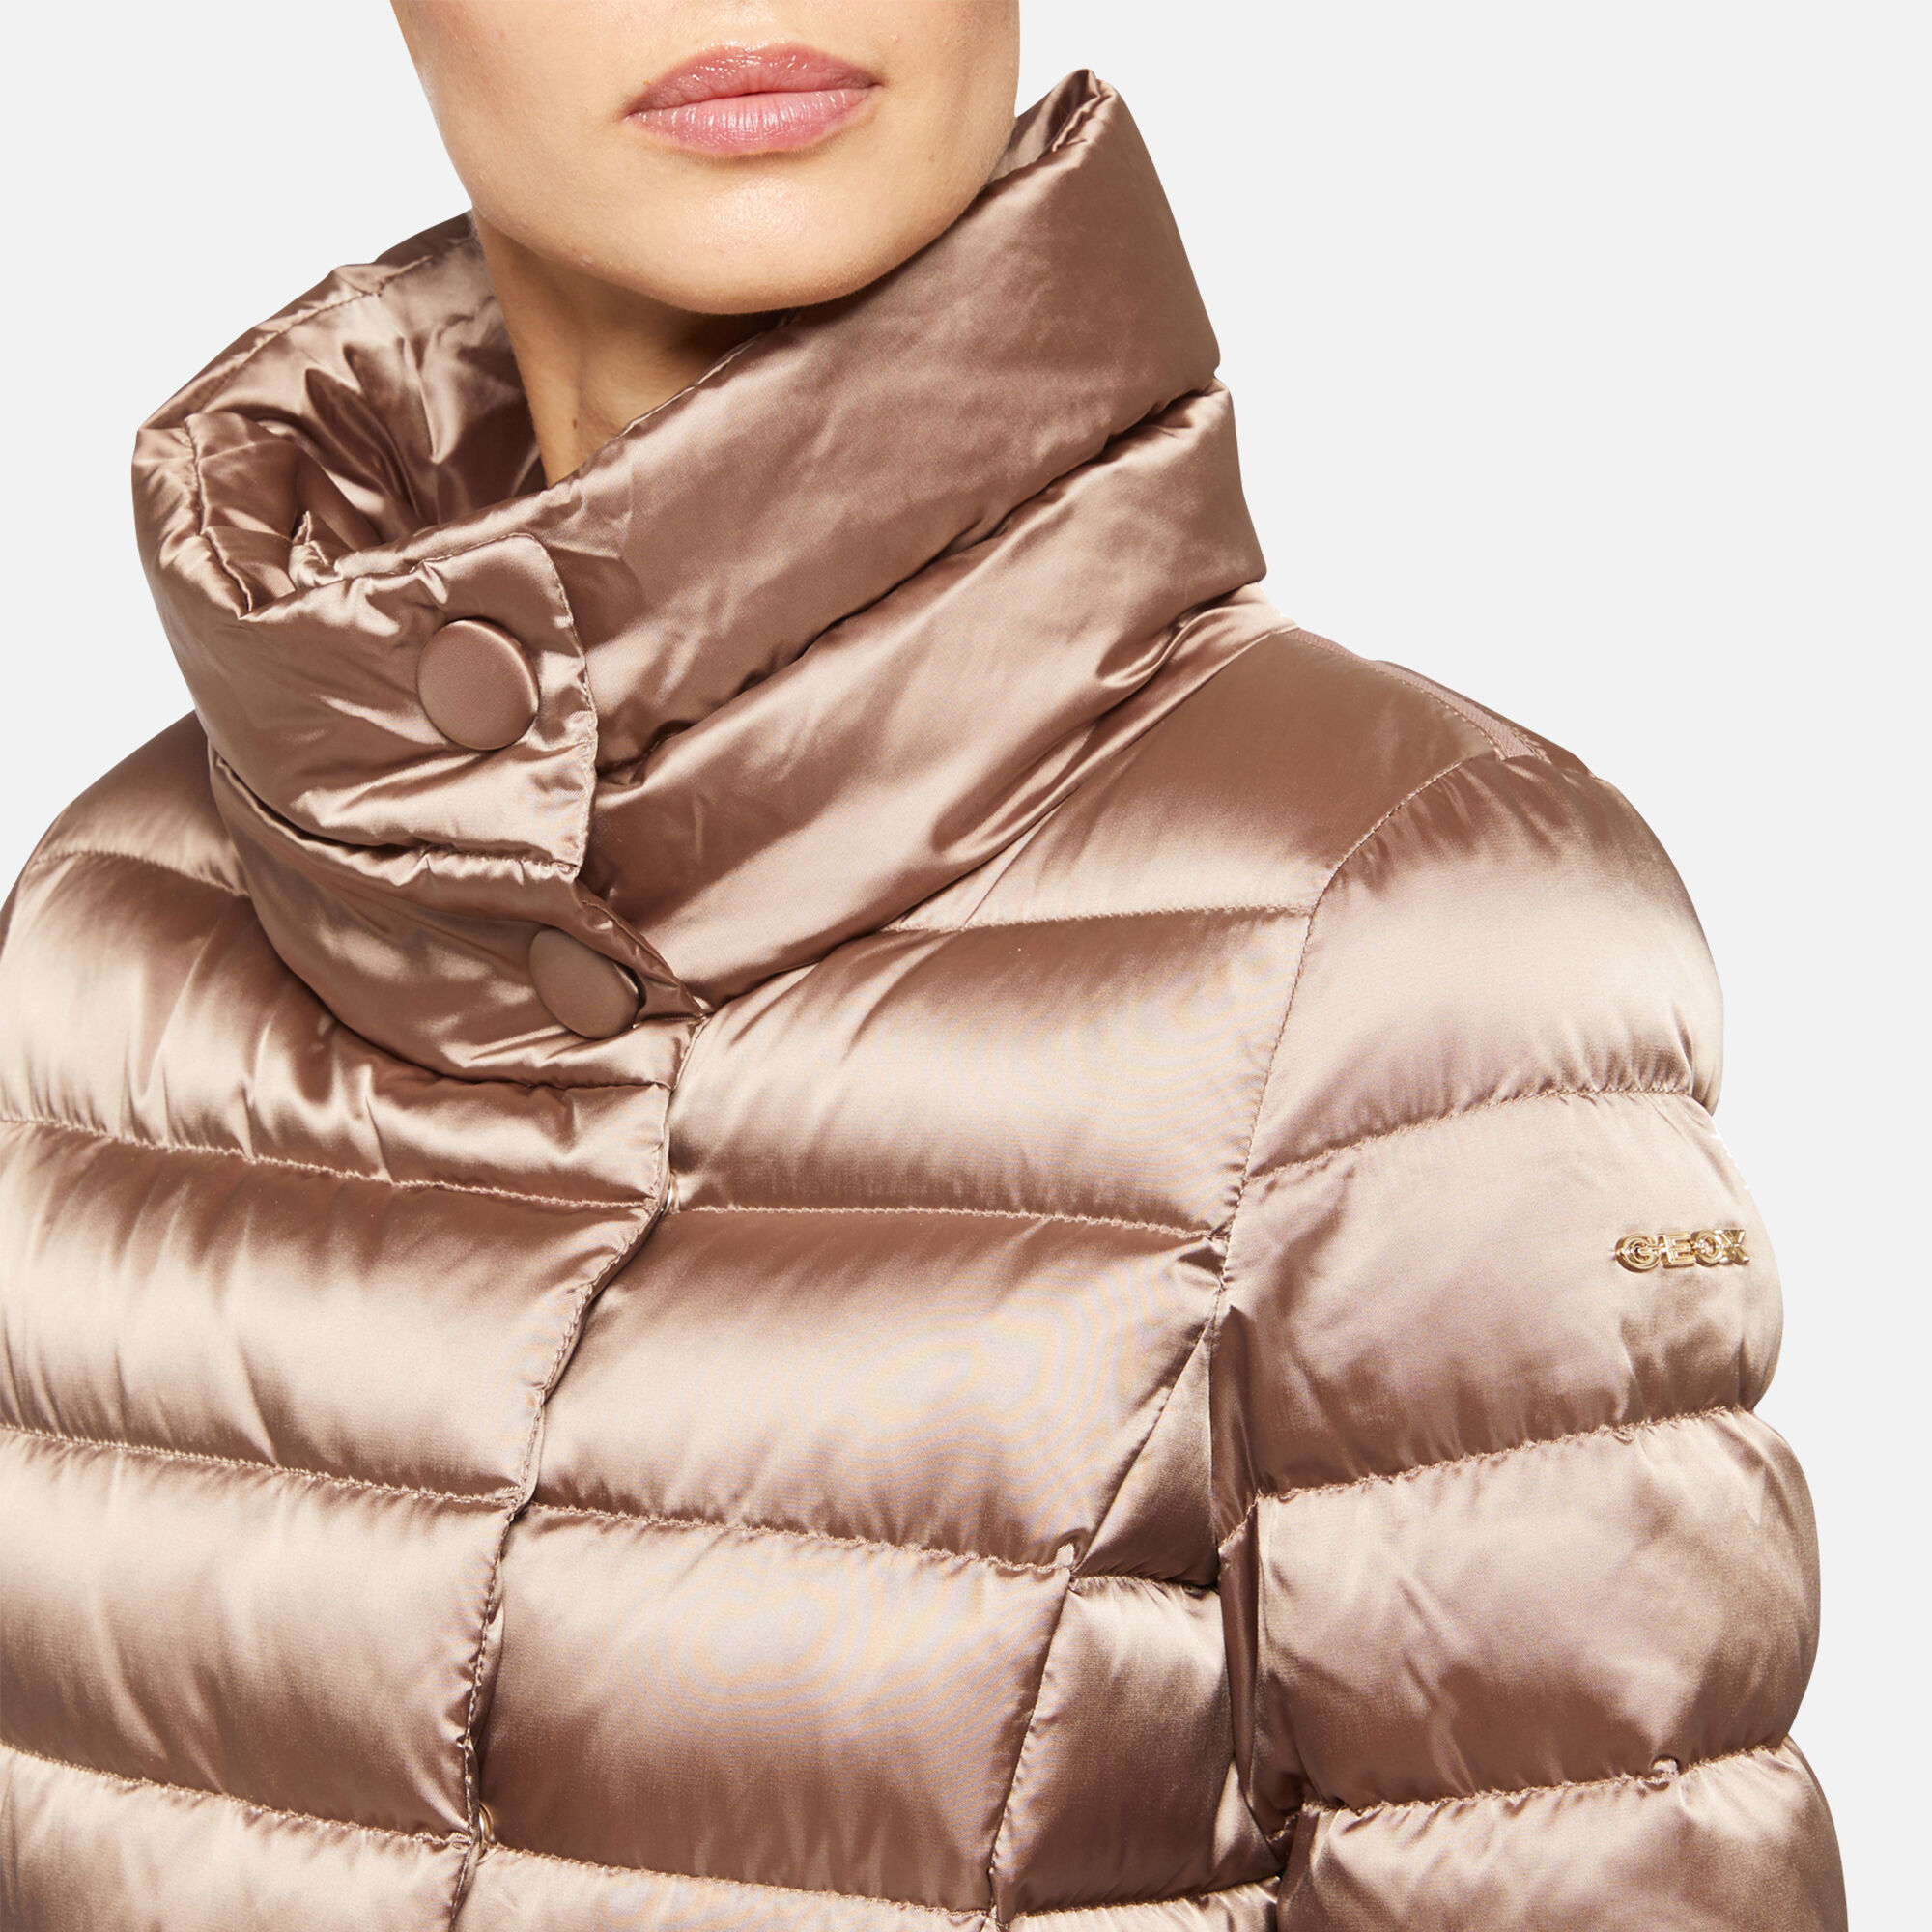 Geox CHLOO Woman: Powder Down Jacket | Geox ® Official Store